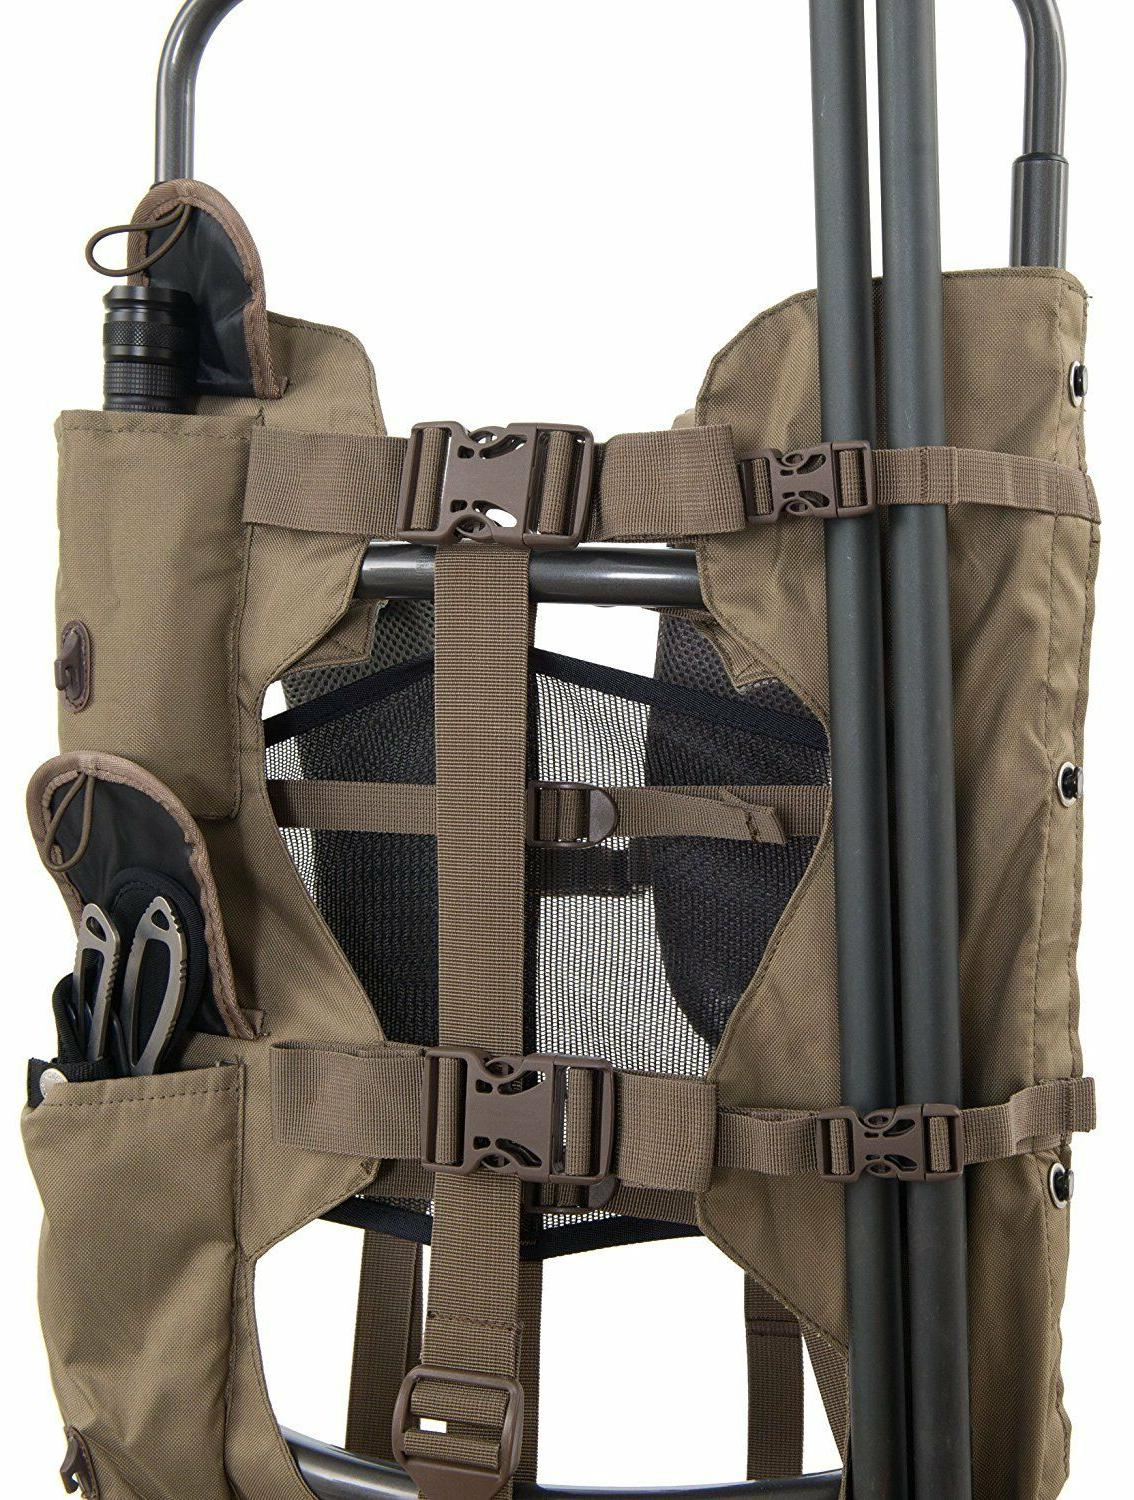 Large Hunting Backpack Freight Best Gear Pack Meat